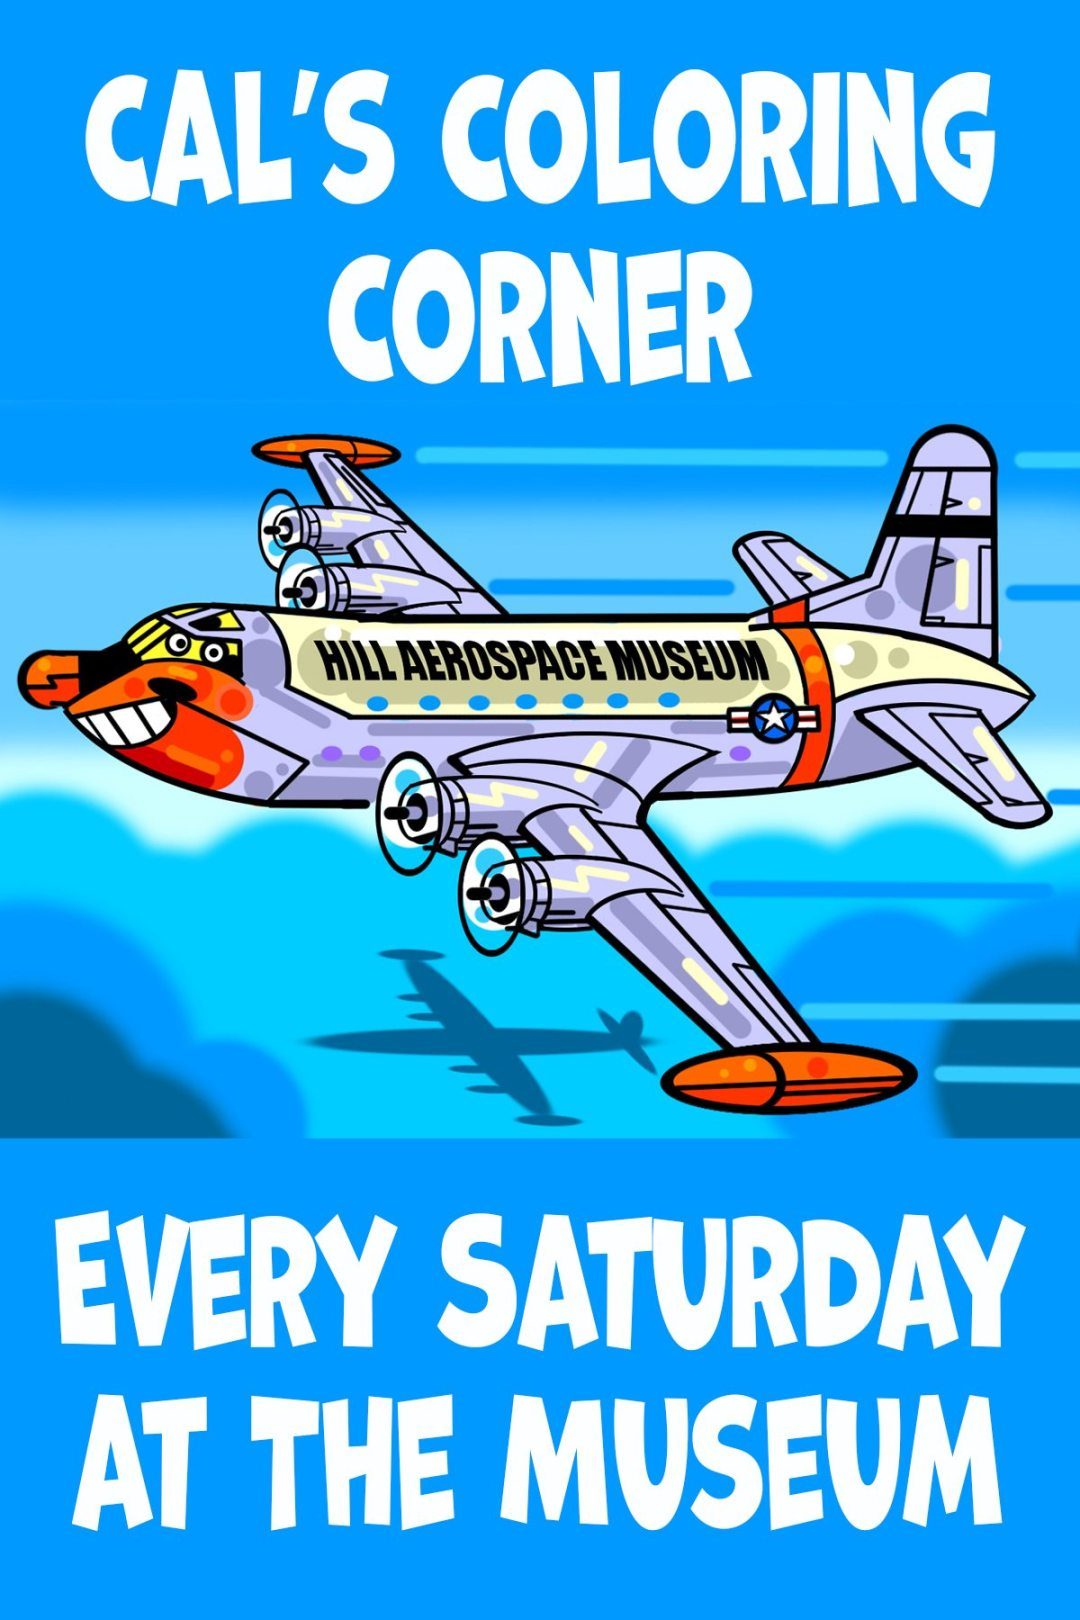 Cal's Coloring Corner Every Saturday